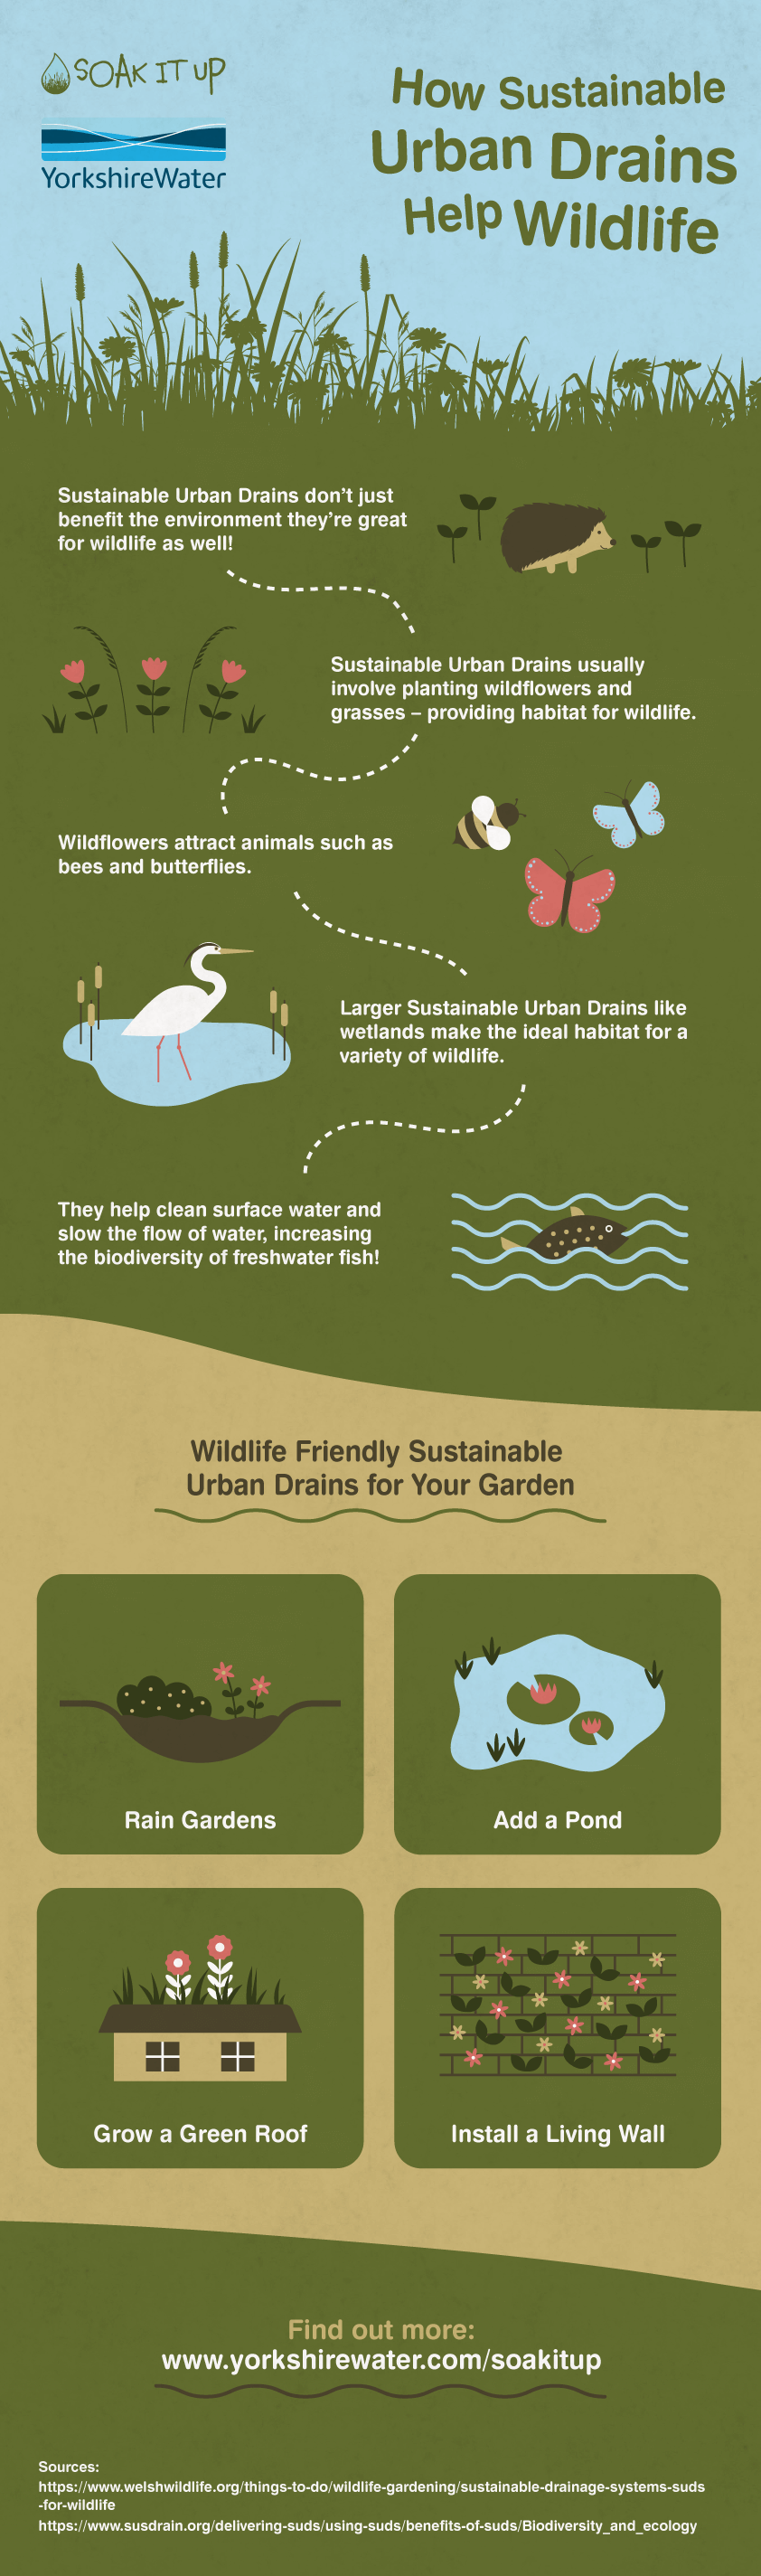 How-SUDS-help-wildlife v1.png